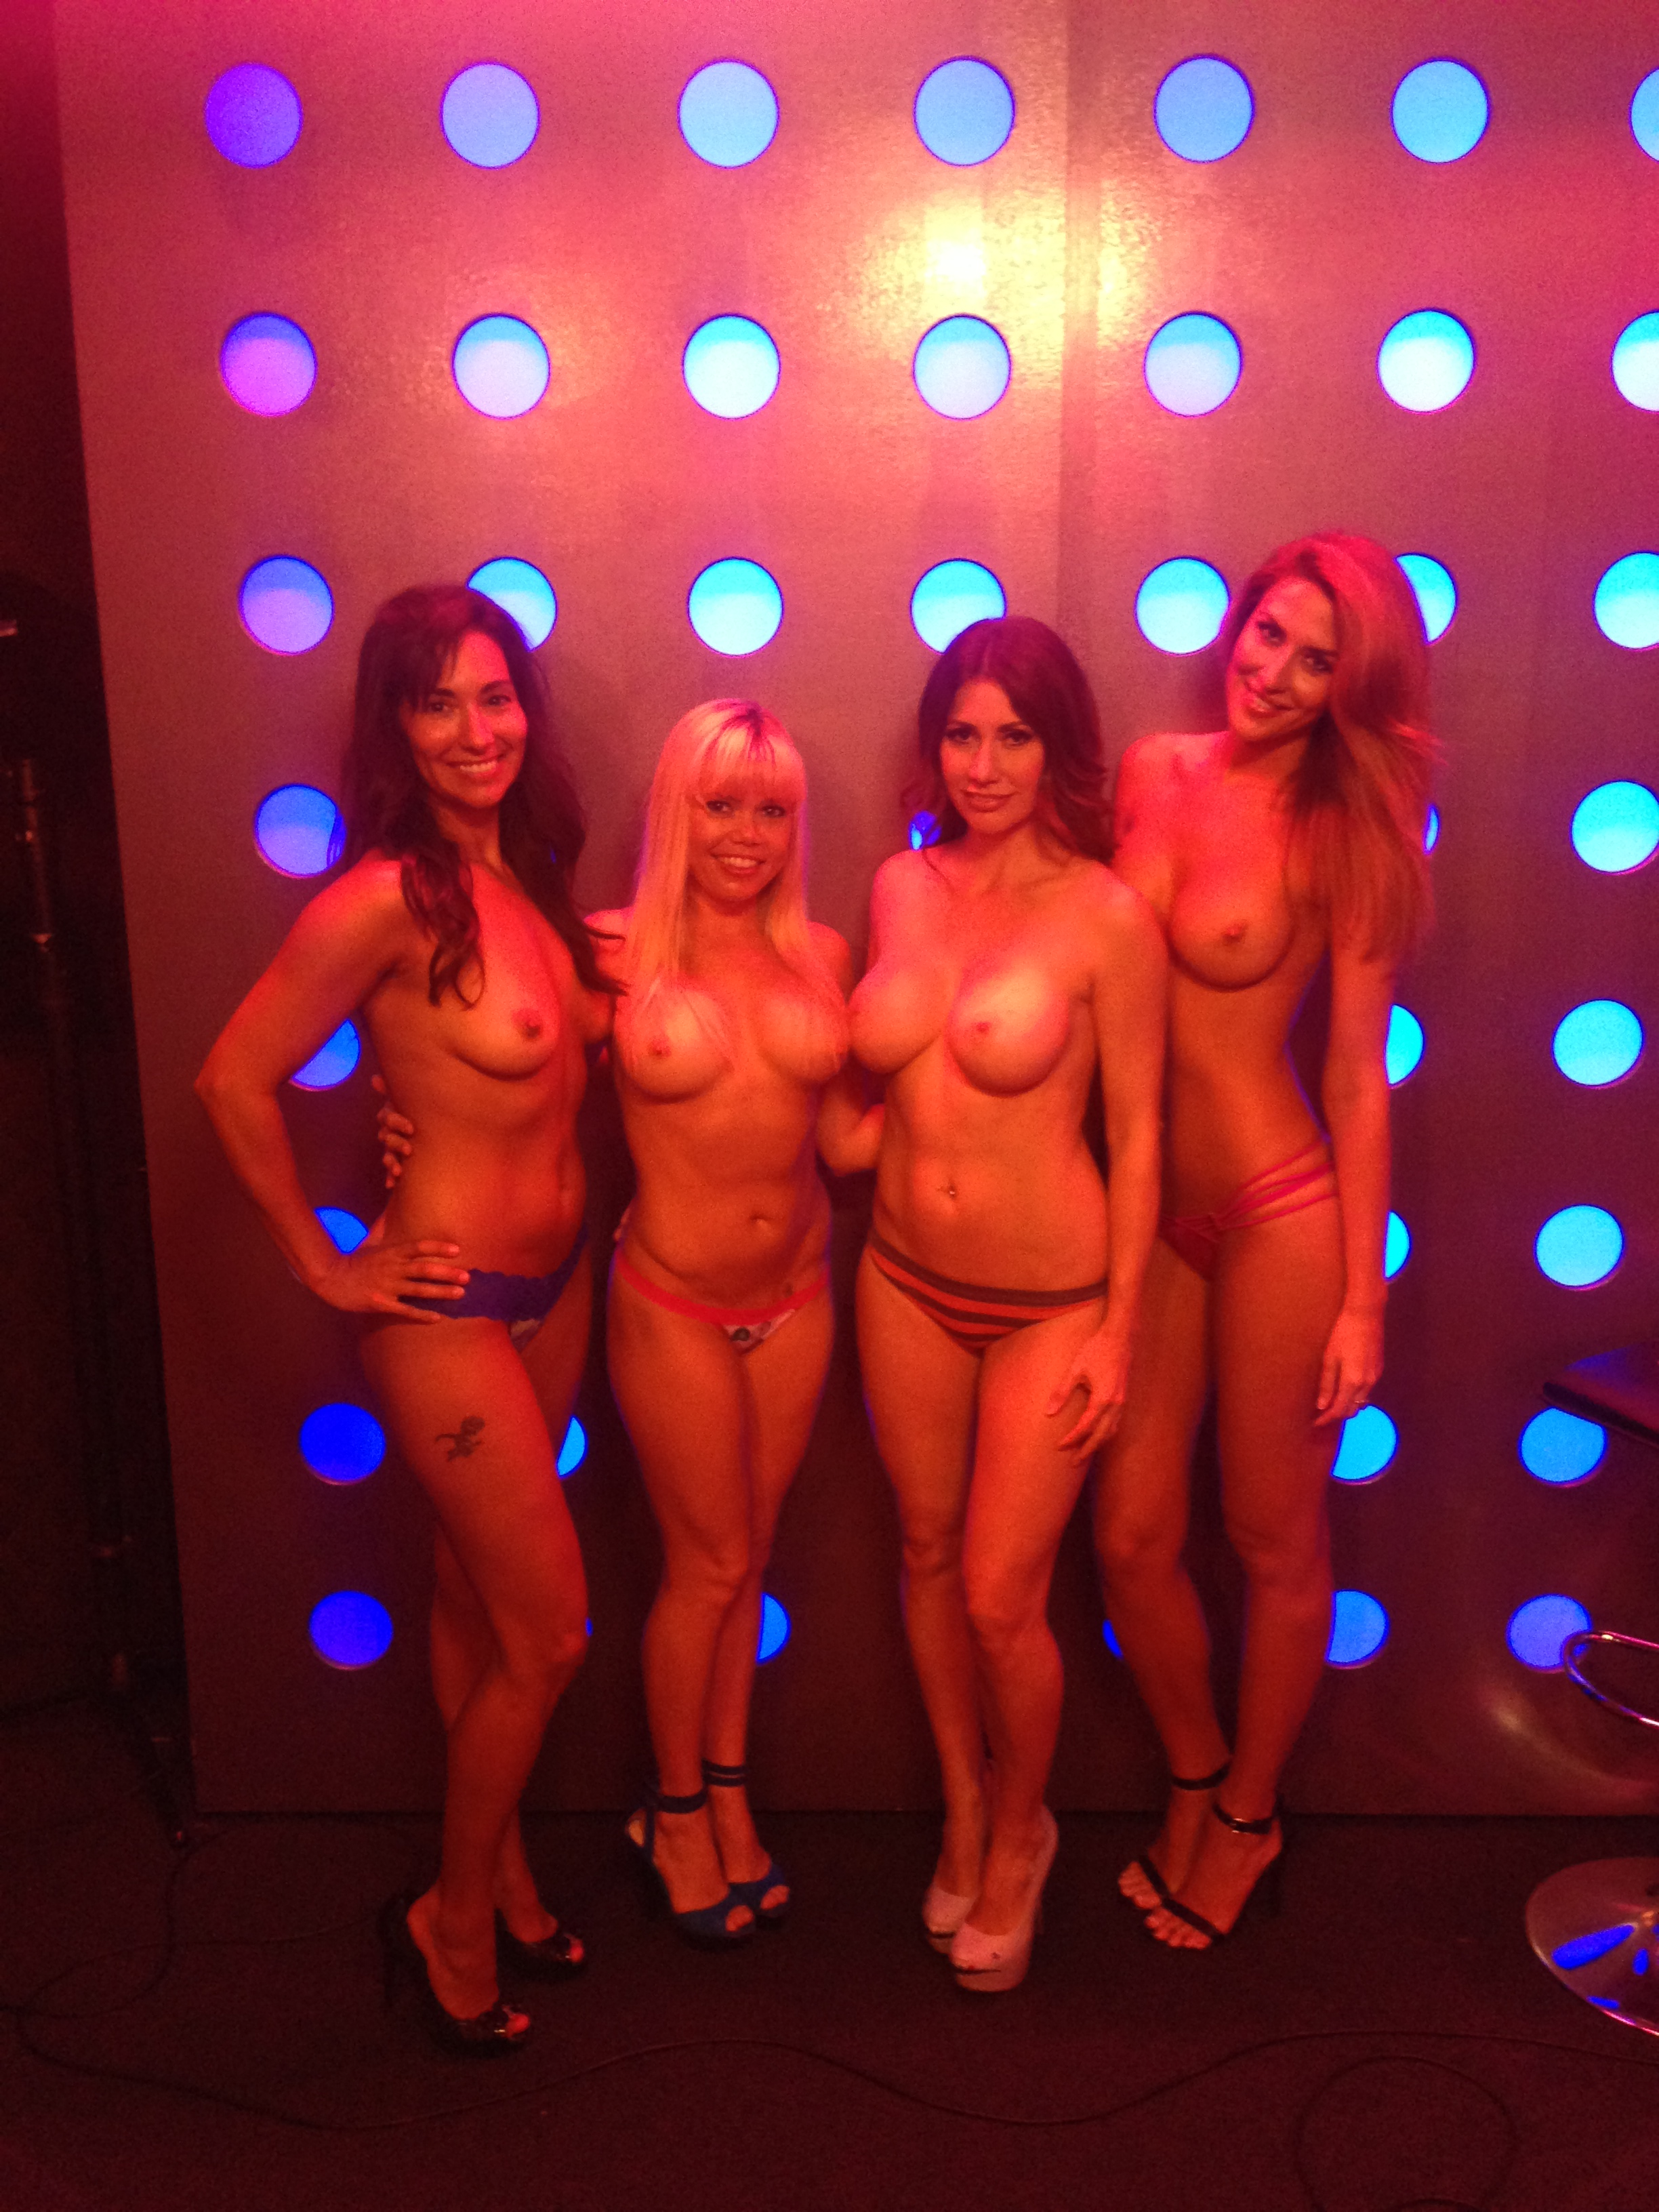 The playboy morning show